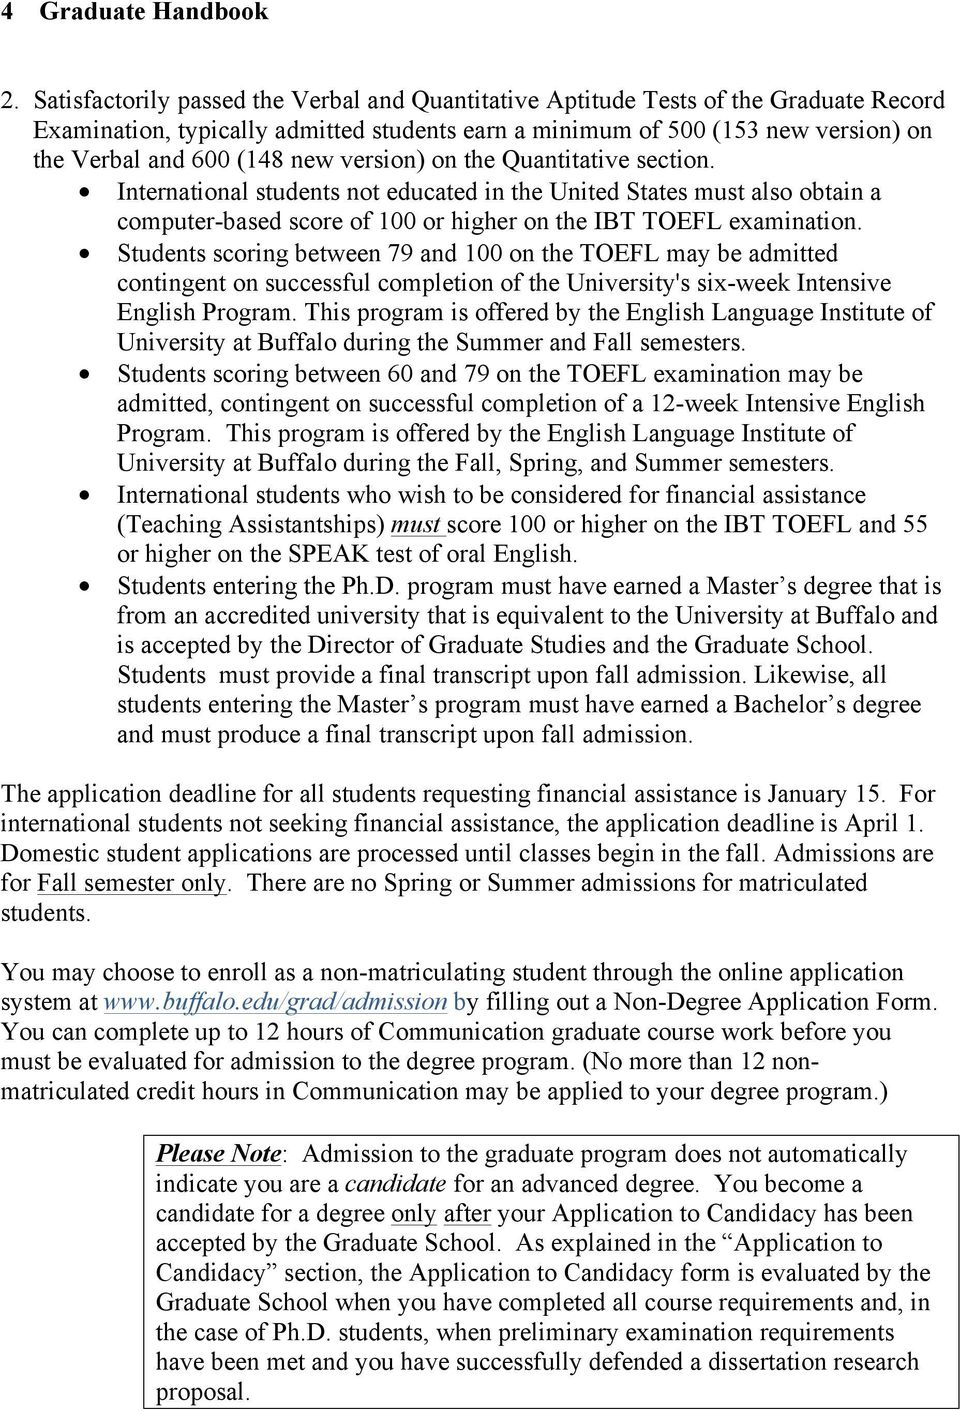 version) on the Quantitative section. International students not educated in the United States must also obtain a computer-based score of 100 or higher on the IBT TOEFL examination.